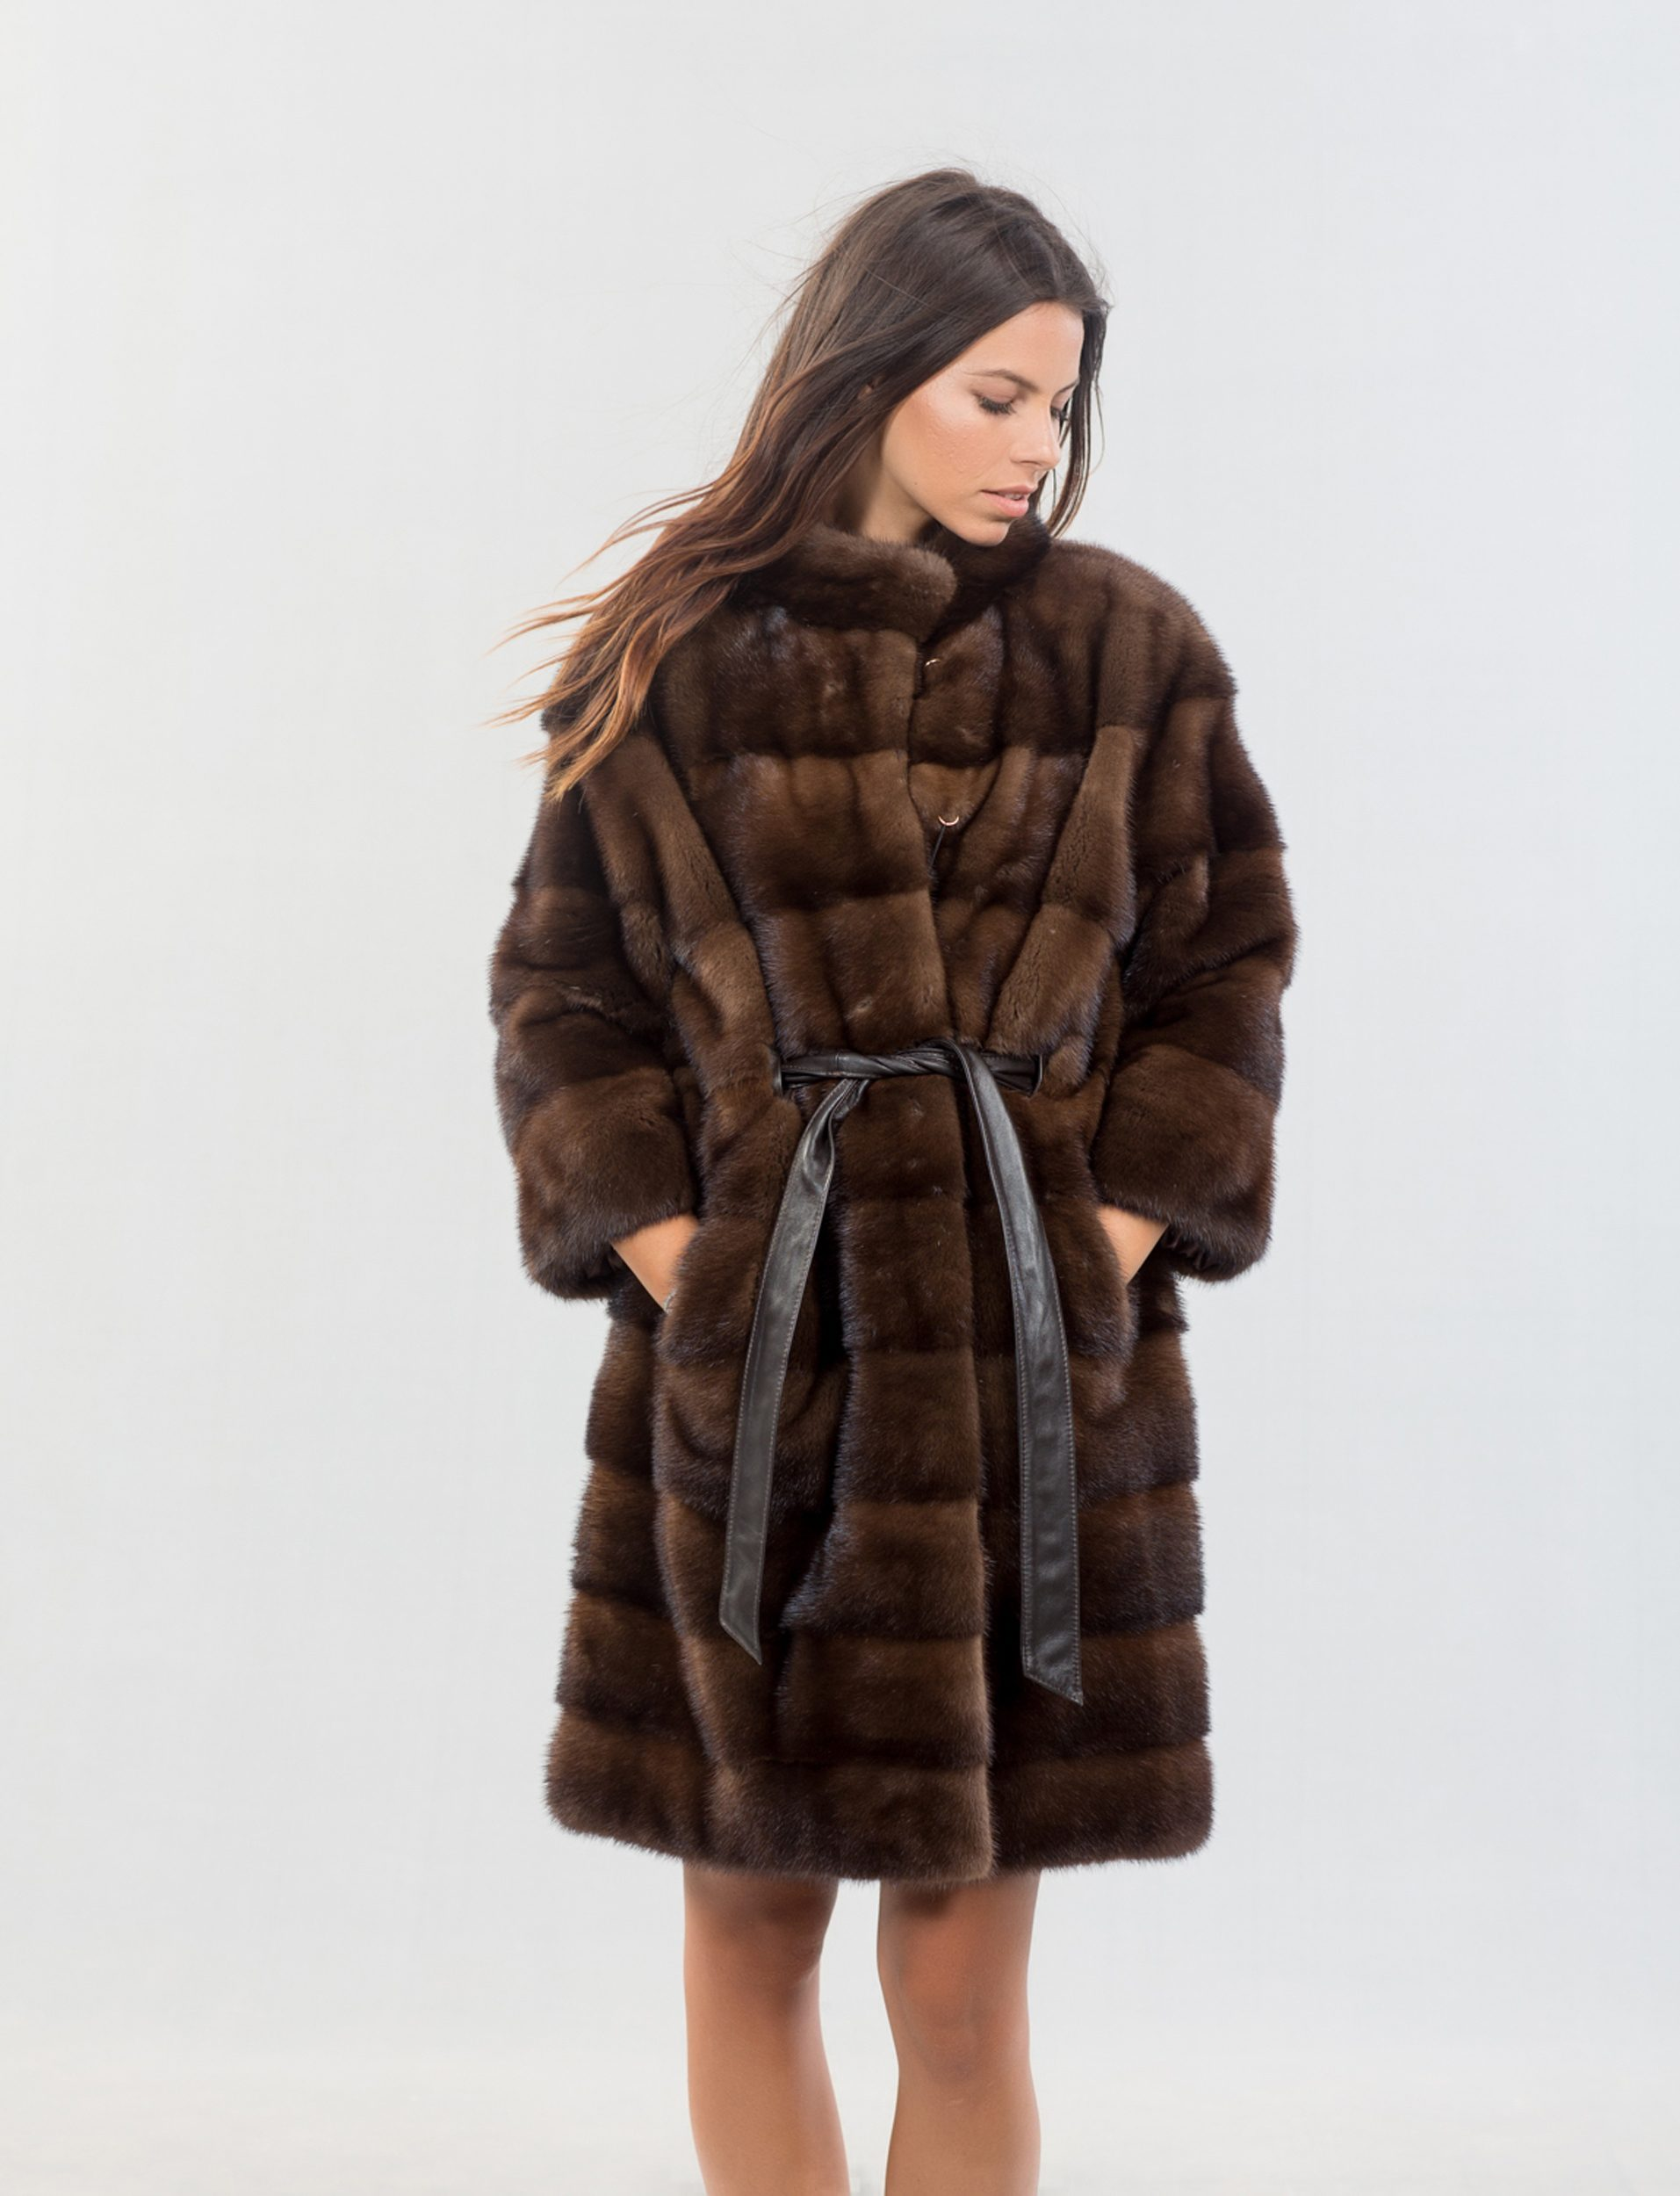 Brown Mink Fur Coat With Belt - 100% Real Fur Coats - Haute Acorn